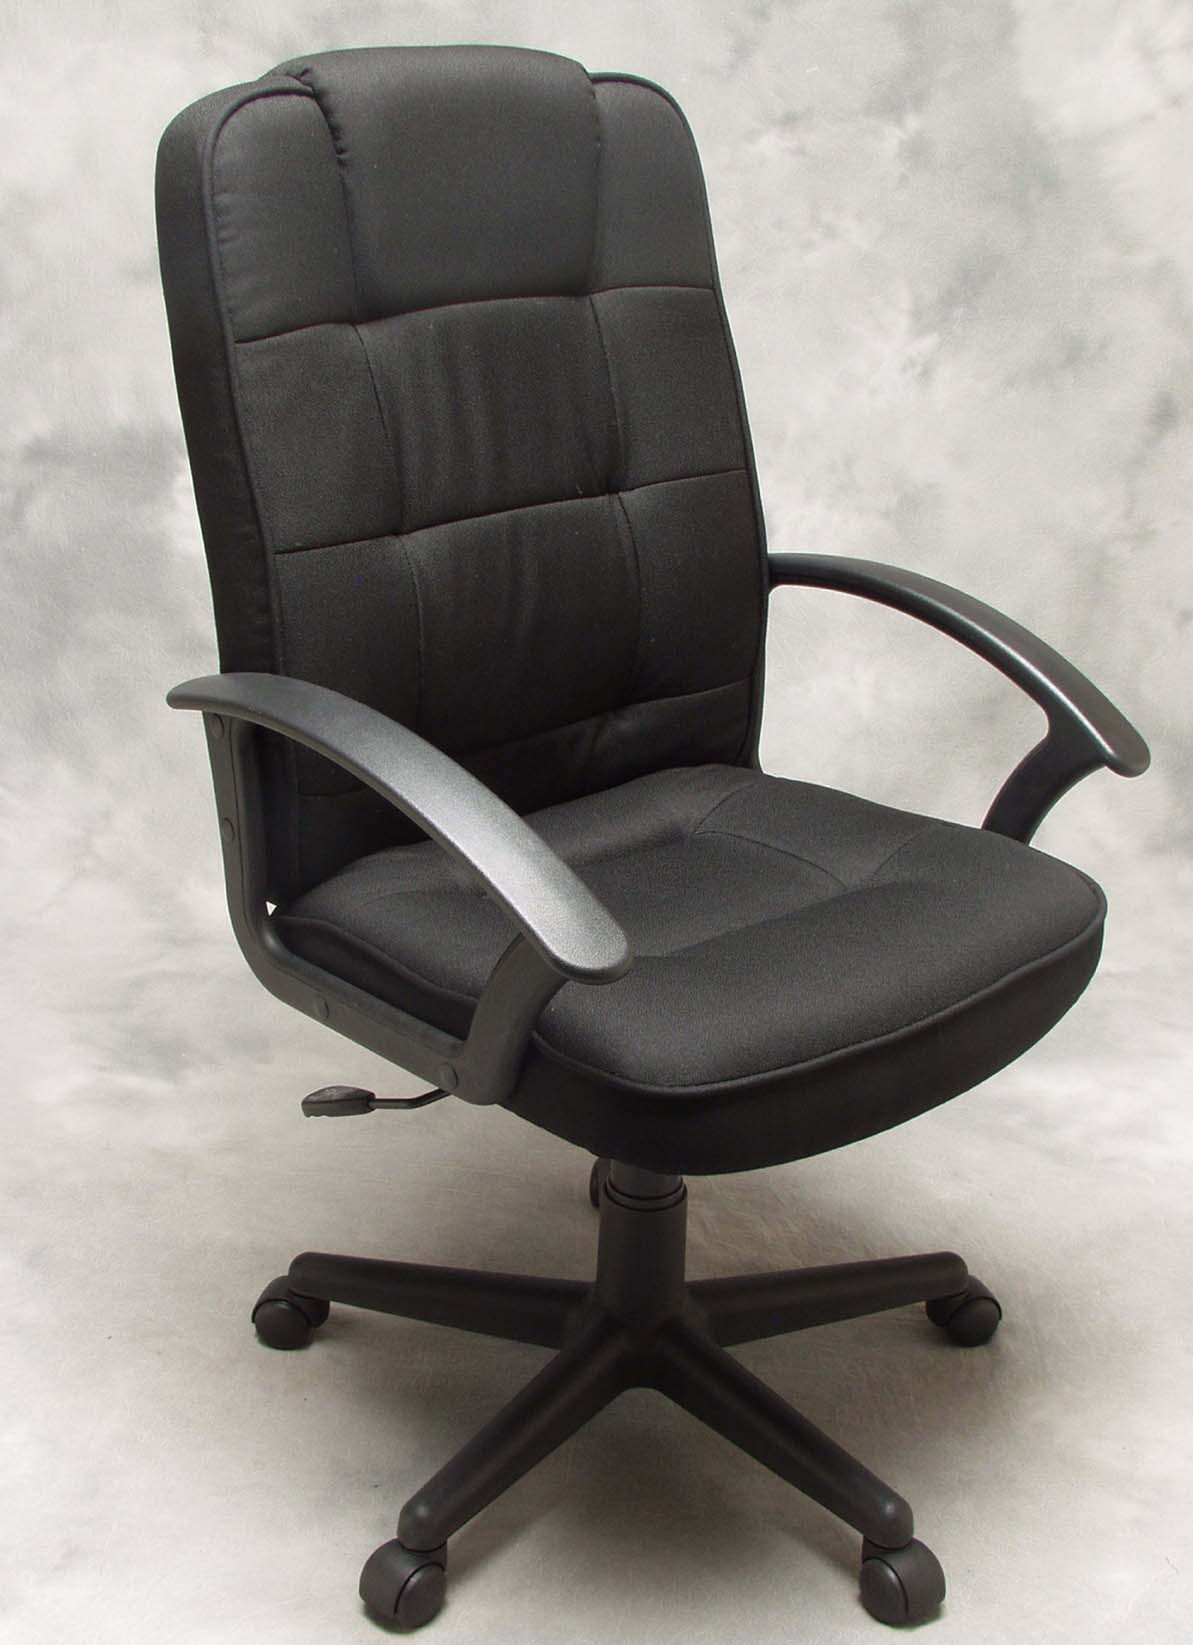 CPSC, Gruga U.S.A. Announce Recall to Repair Office Chairs Sold At